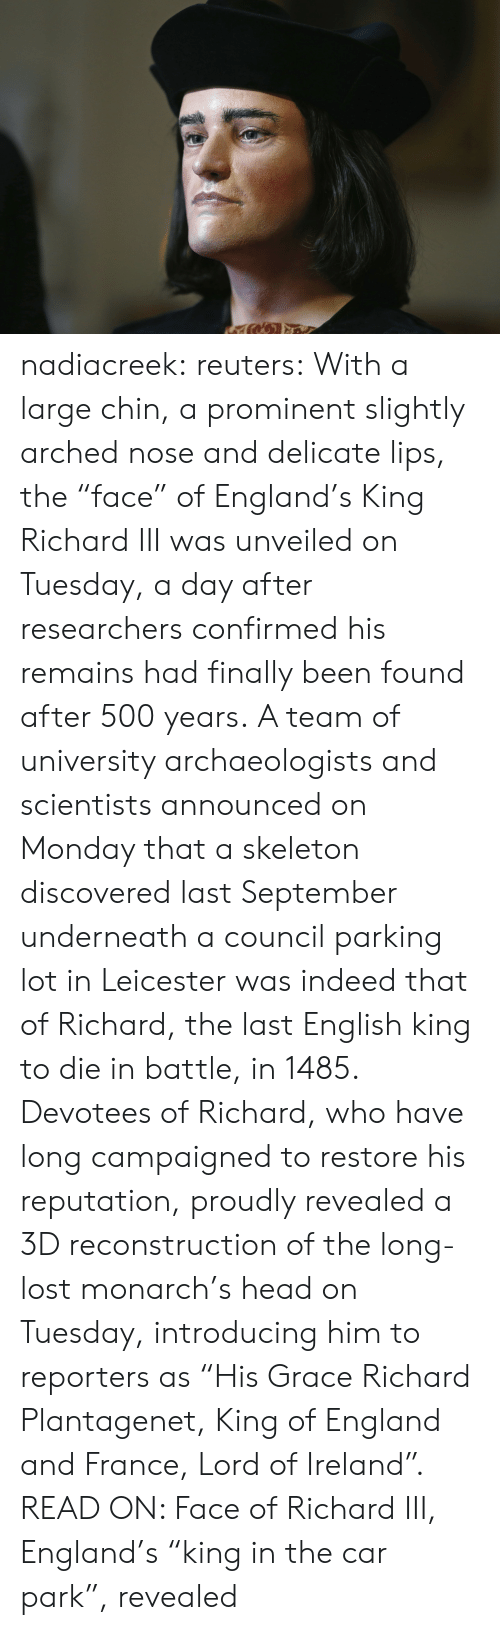 """England, Head, and Tumblr: nadiacreek: reuters:  With a large chin, a prominent slightly arched nose and delicate lips, the """"face"""" of England's King Richard III was unveiled on Tuesday, a day after researchers confirmed his remains had finally been found after 500 years. A team of university archaeologists and scientists announced on Monday that a skeleton discovered last September underneath a council parking lot in Leicester was indeed that of Richard, the last English king to die in battle, in 1485. Devotees of Richard, who have long campaigned to restore his reputation, proudly revealed a 3D reconstruction of the long-lost monarch's head on Tuesday, introducing him to reporters as """"His Grace Richard Plantagenet, King of England and France, Lord of Ireland"""". READ ON: Face of Richard III, England's """"king in the car park"""", revealed"""